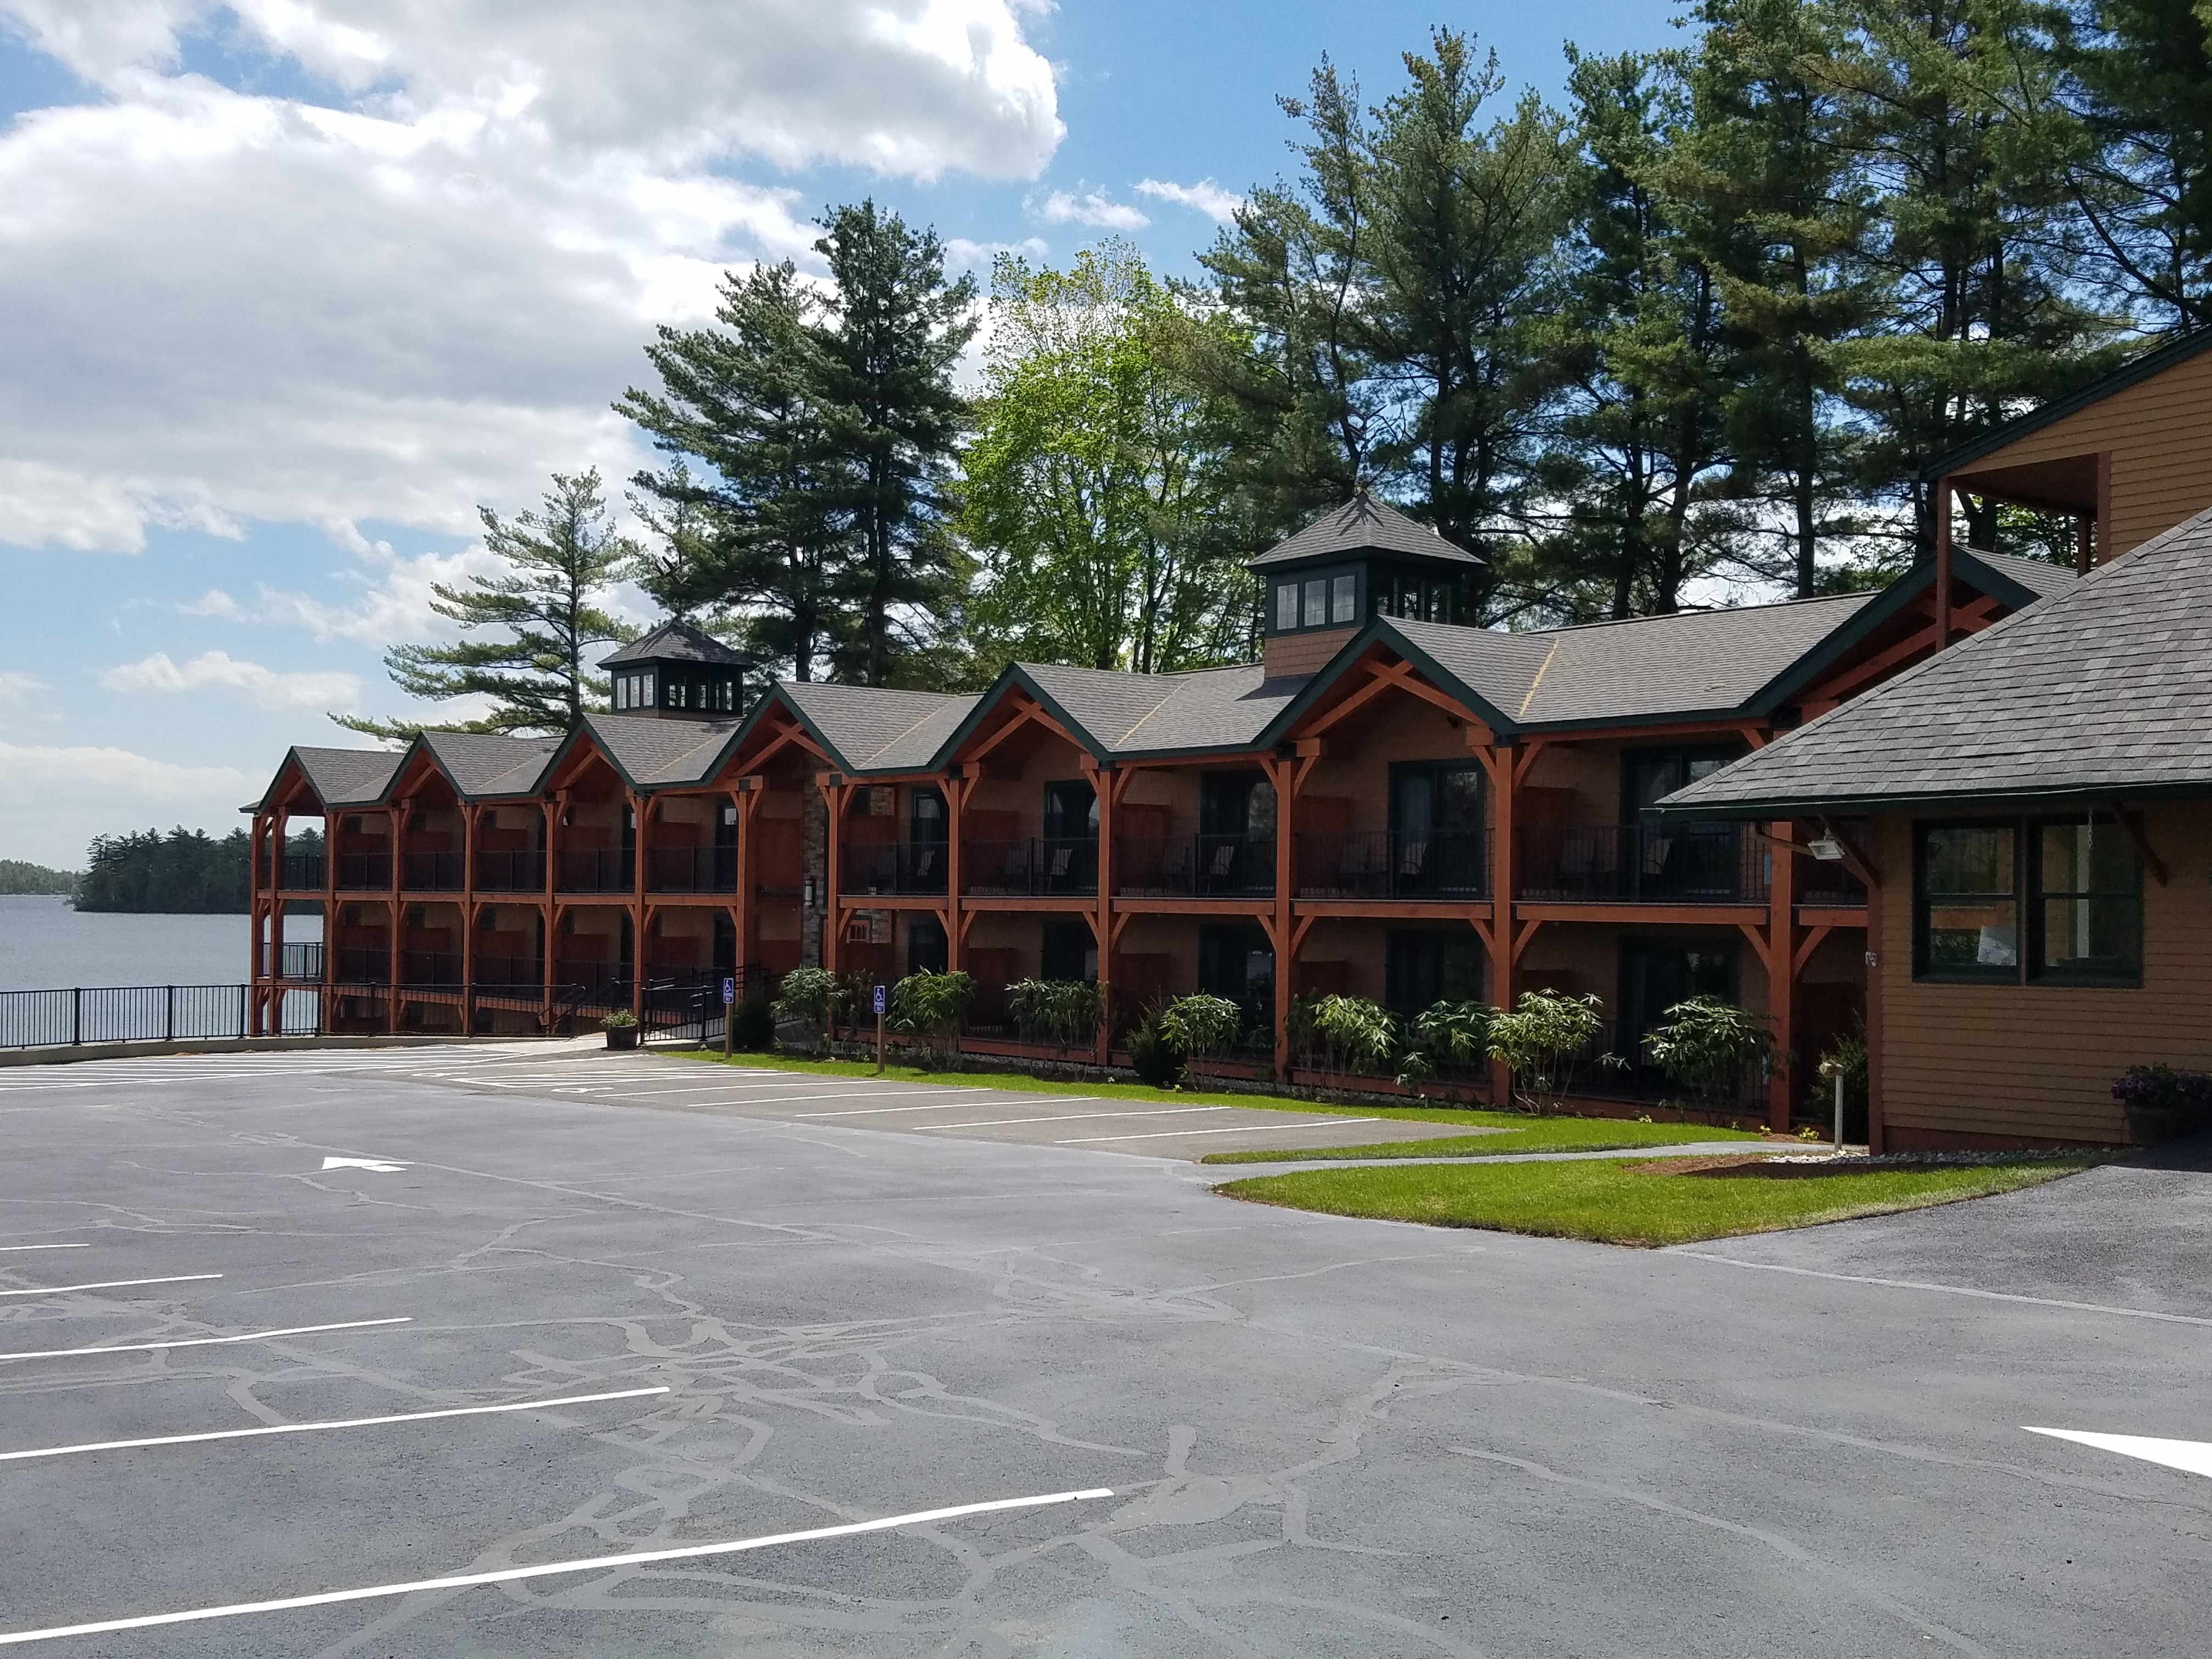 Commercial Roof by ASAP Roofing NH | Center Harbor Inn